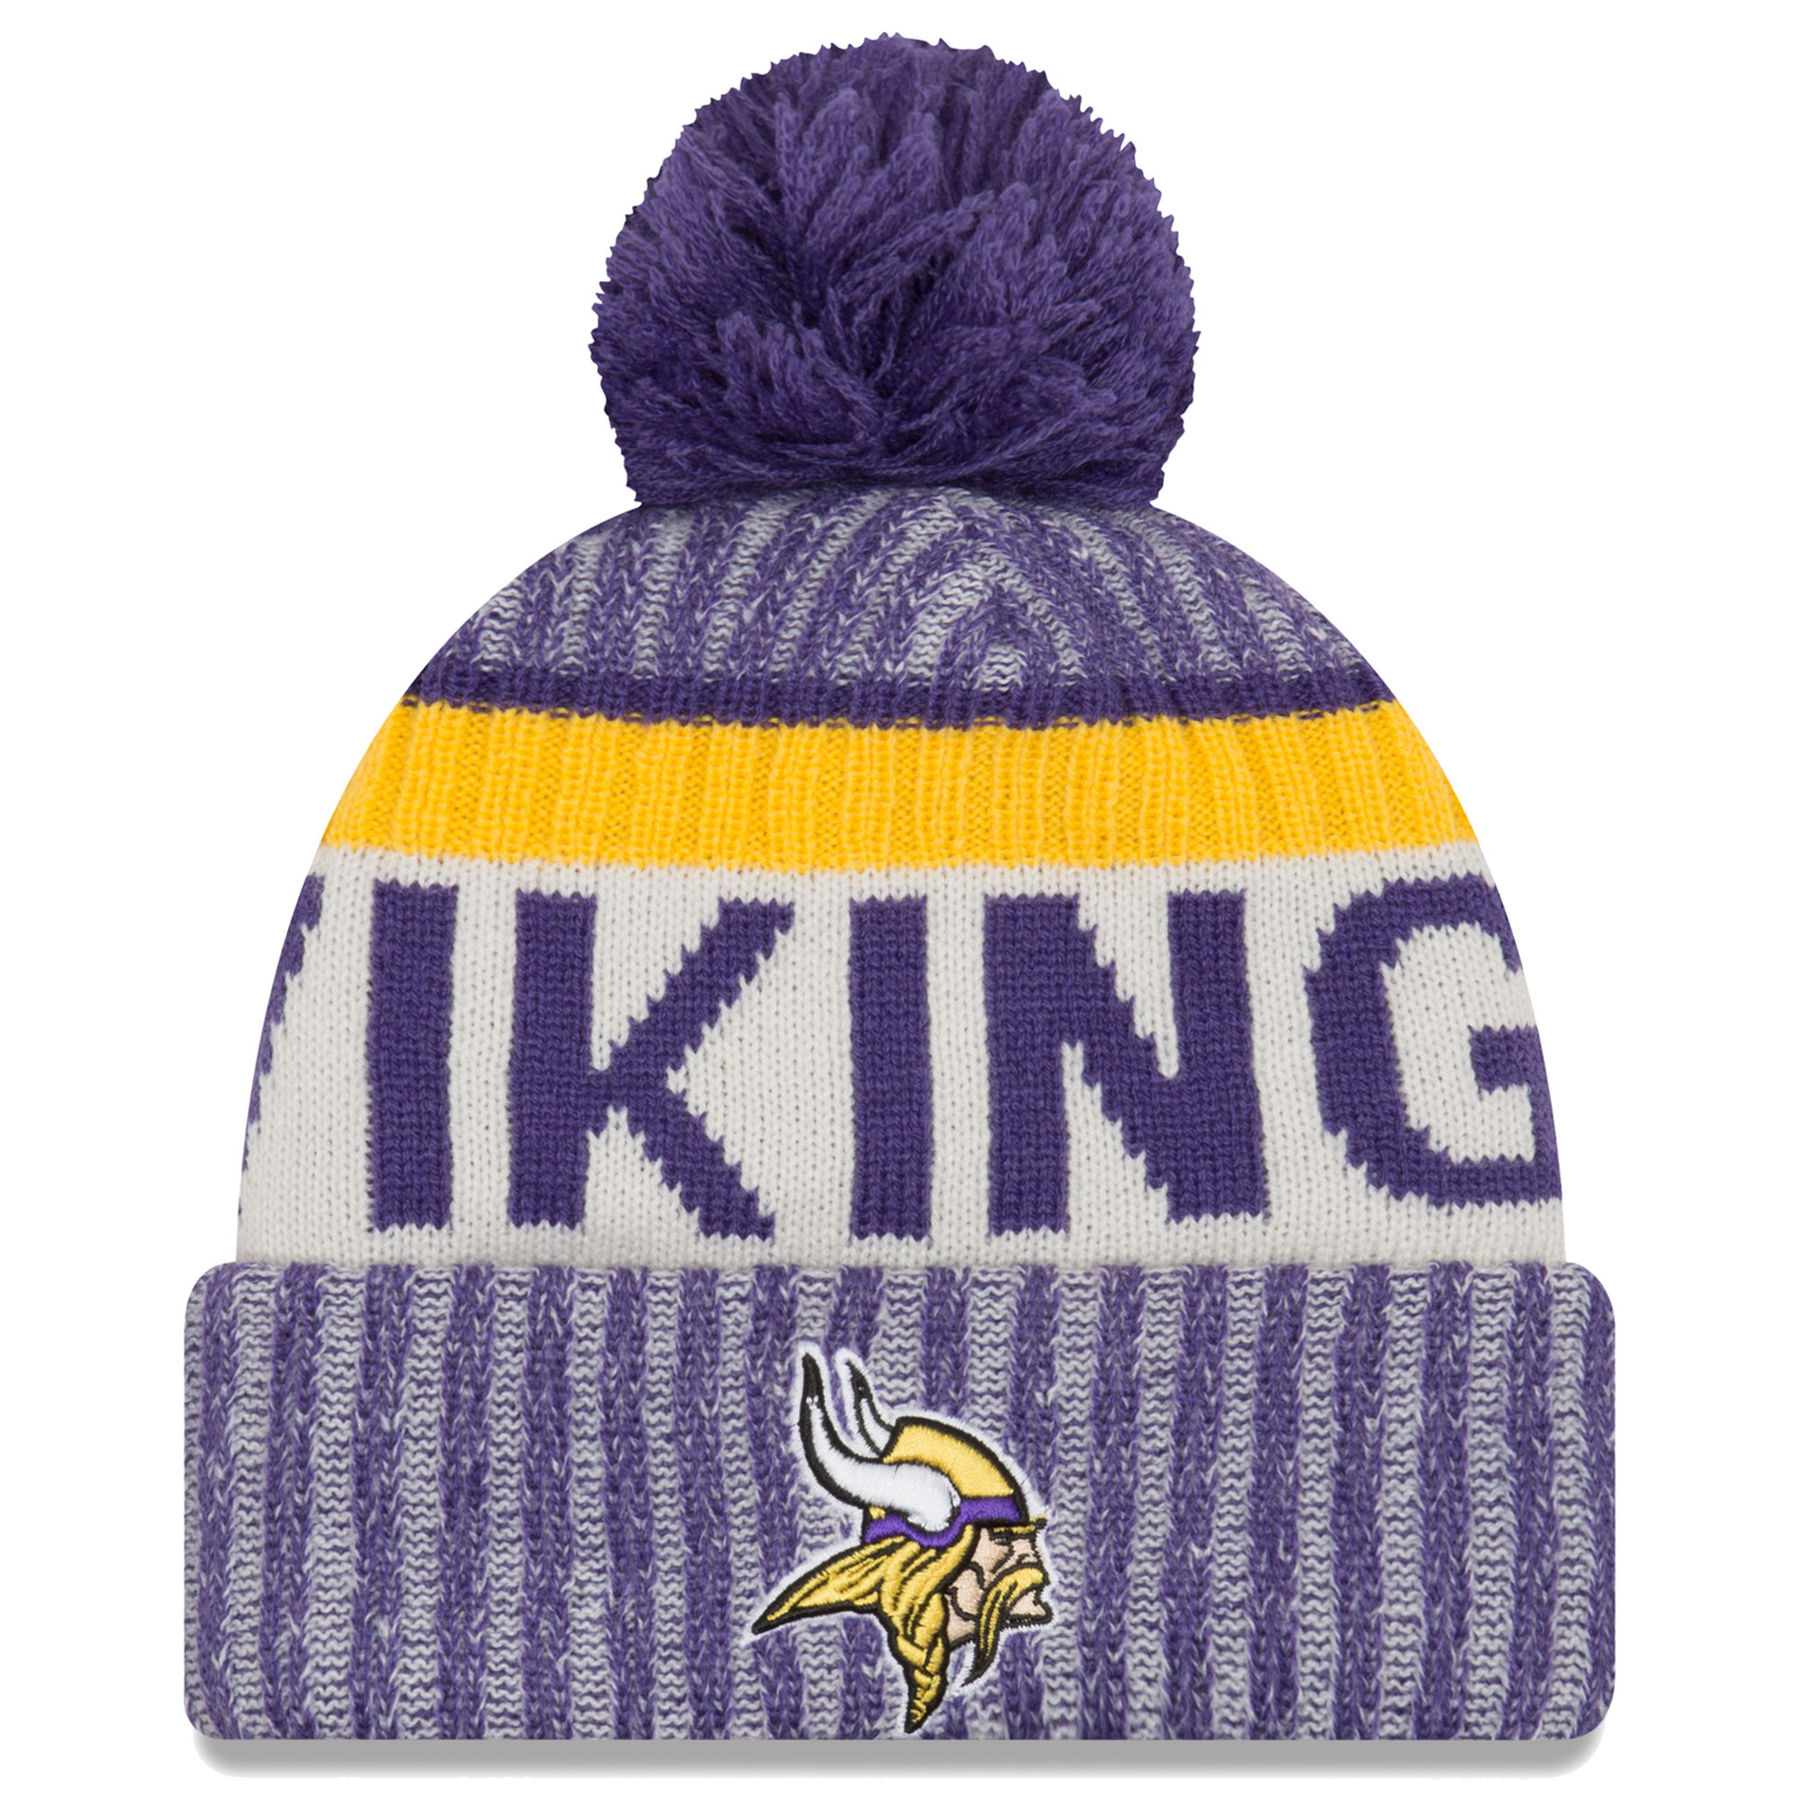 Minnesota Vikings New Era 2017 NFL Official Sideline Sport Knit Hat